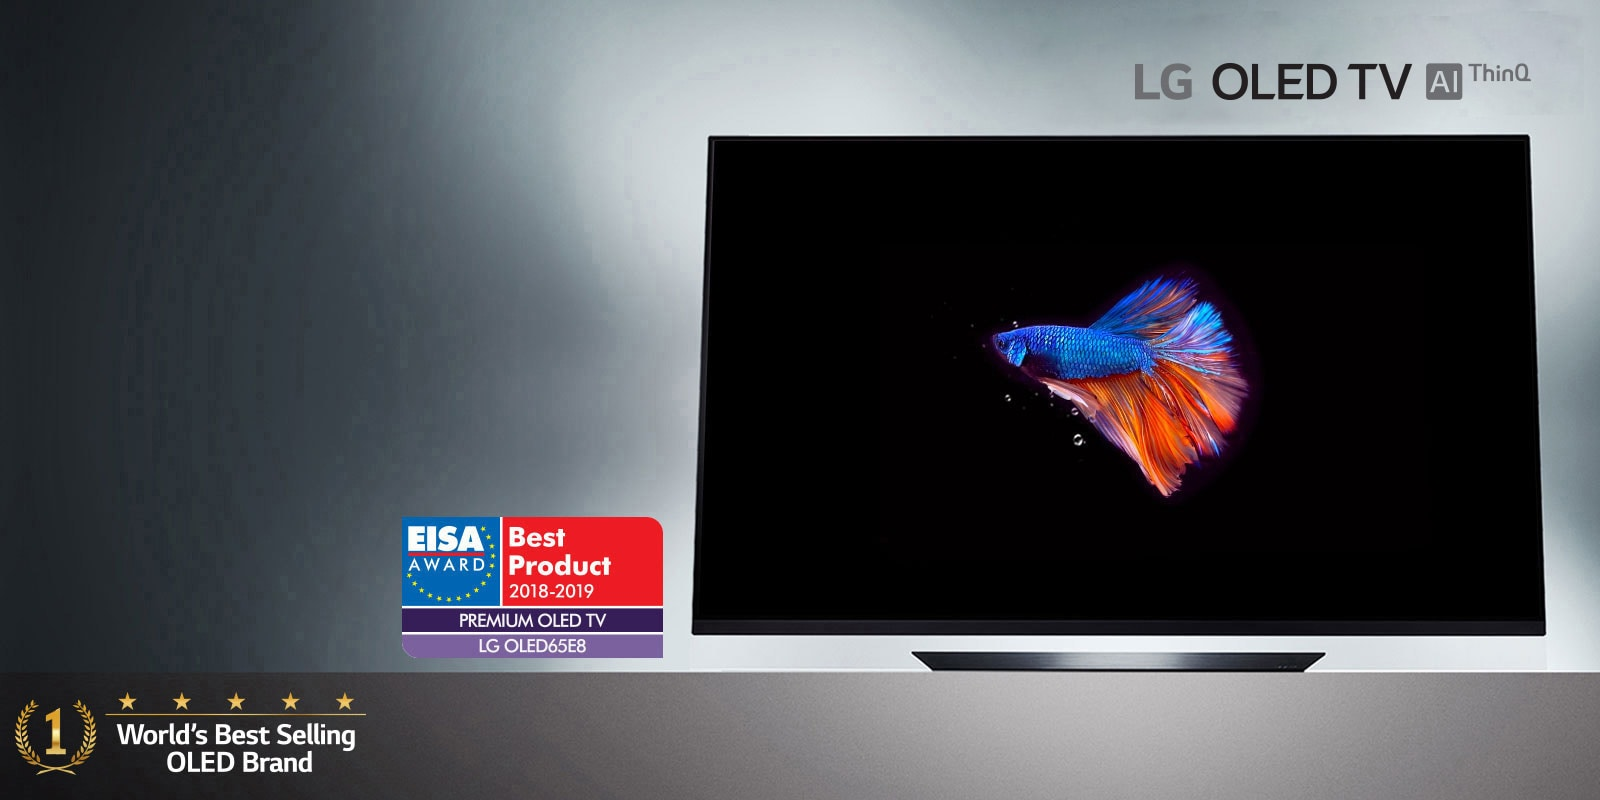 O Led Televisions - Compare Latest Lg Tvs In India | Lg India